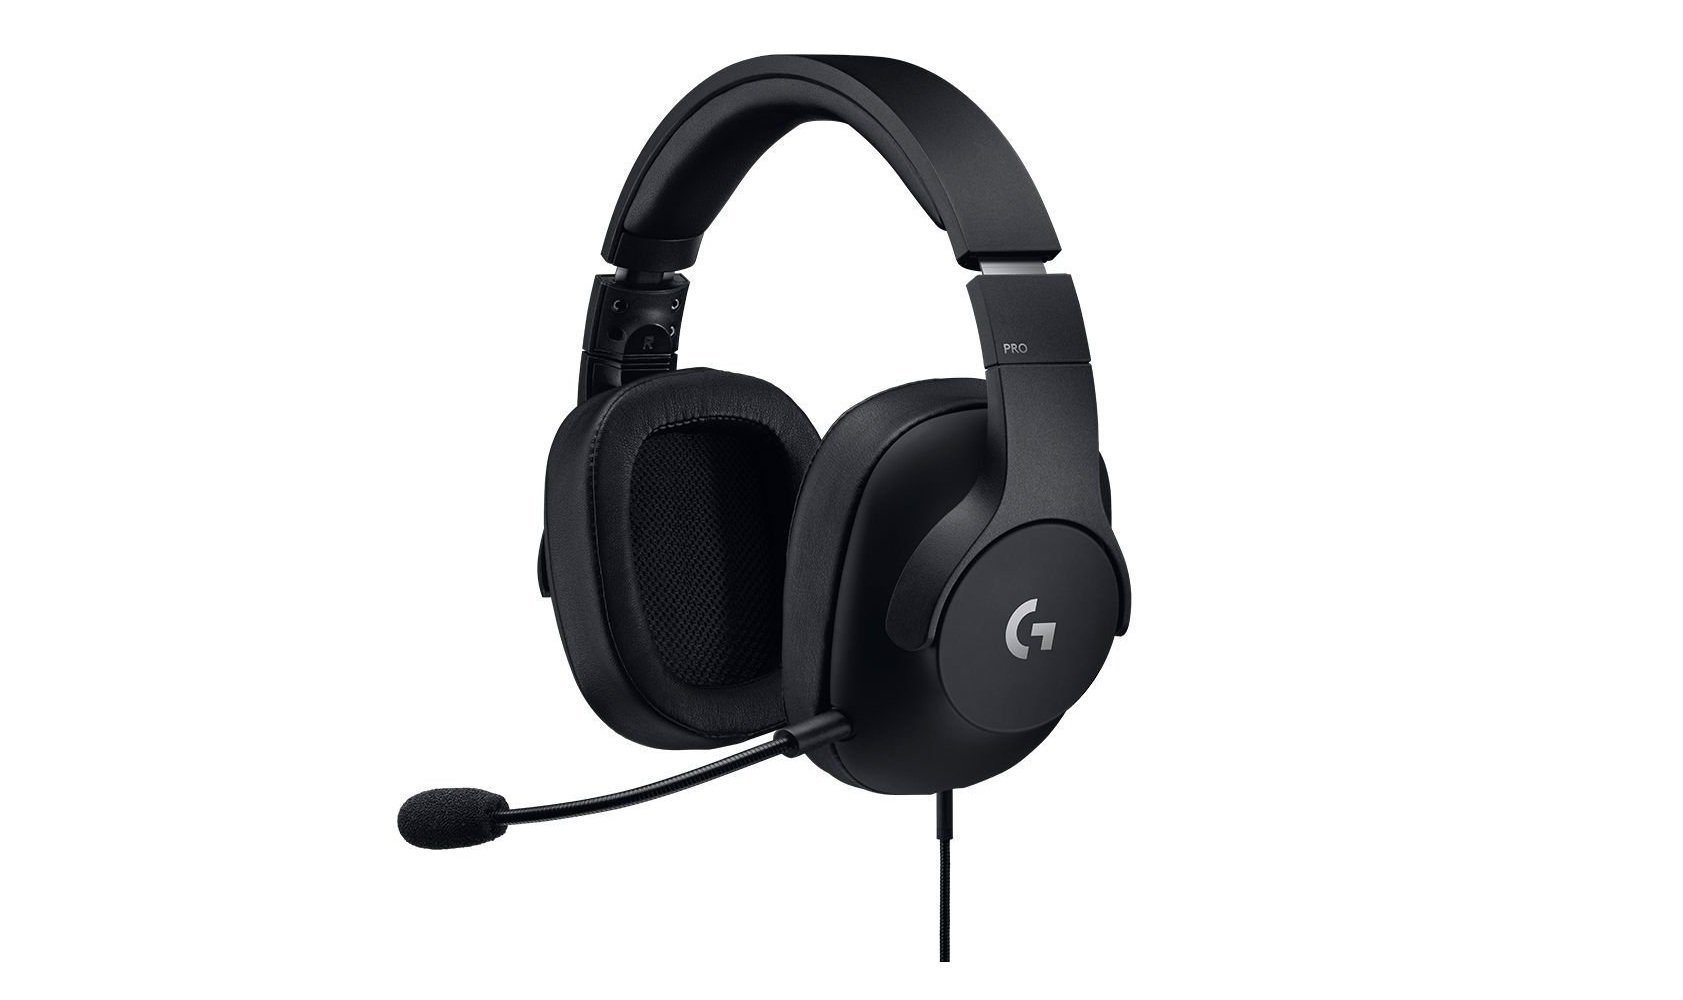 954e5998414dbf Headphones aren't just for listening to music. You'll want better sound  quality when gaming, too and that's where a gaming headset will give you an  ...